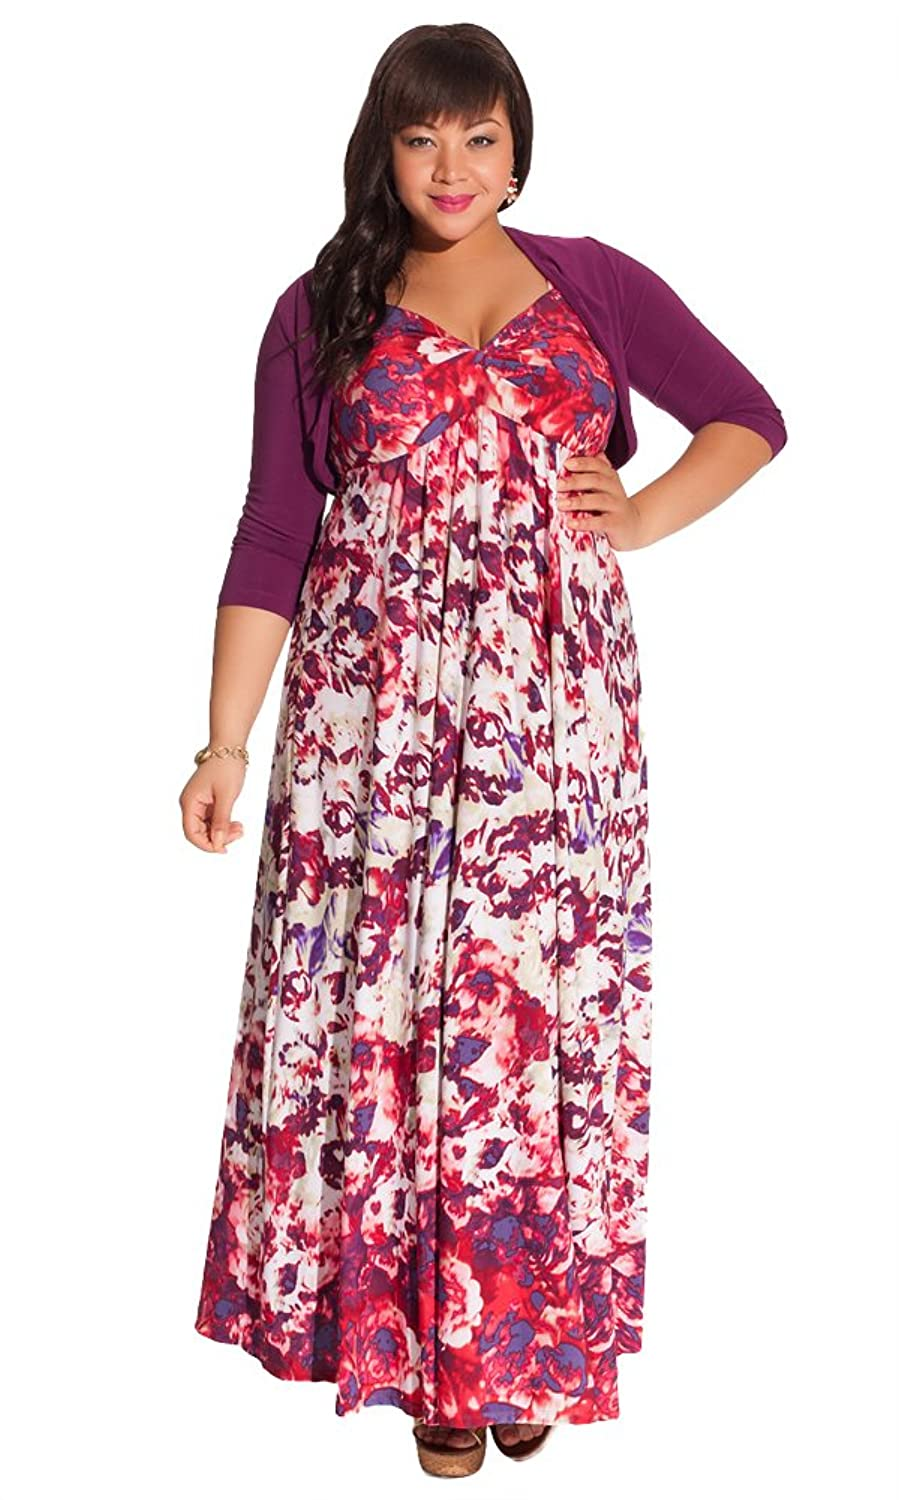 HD wallpapers avril plus size maxi dress in violet with shrug Page 2